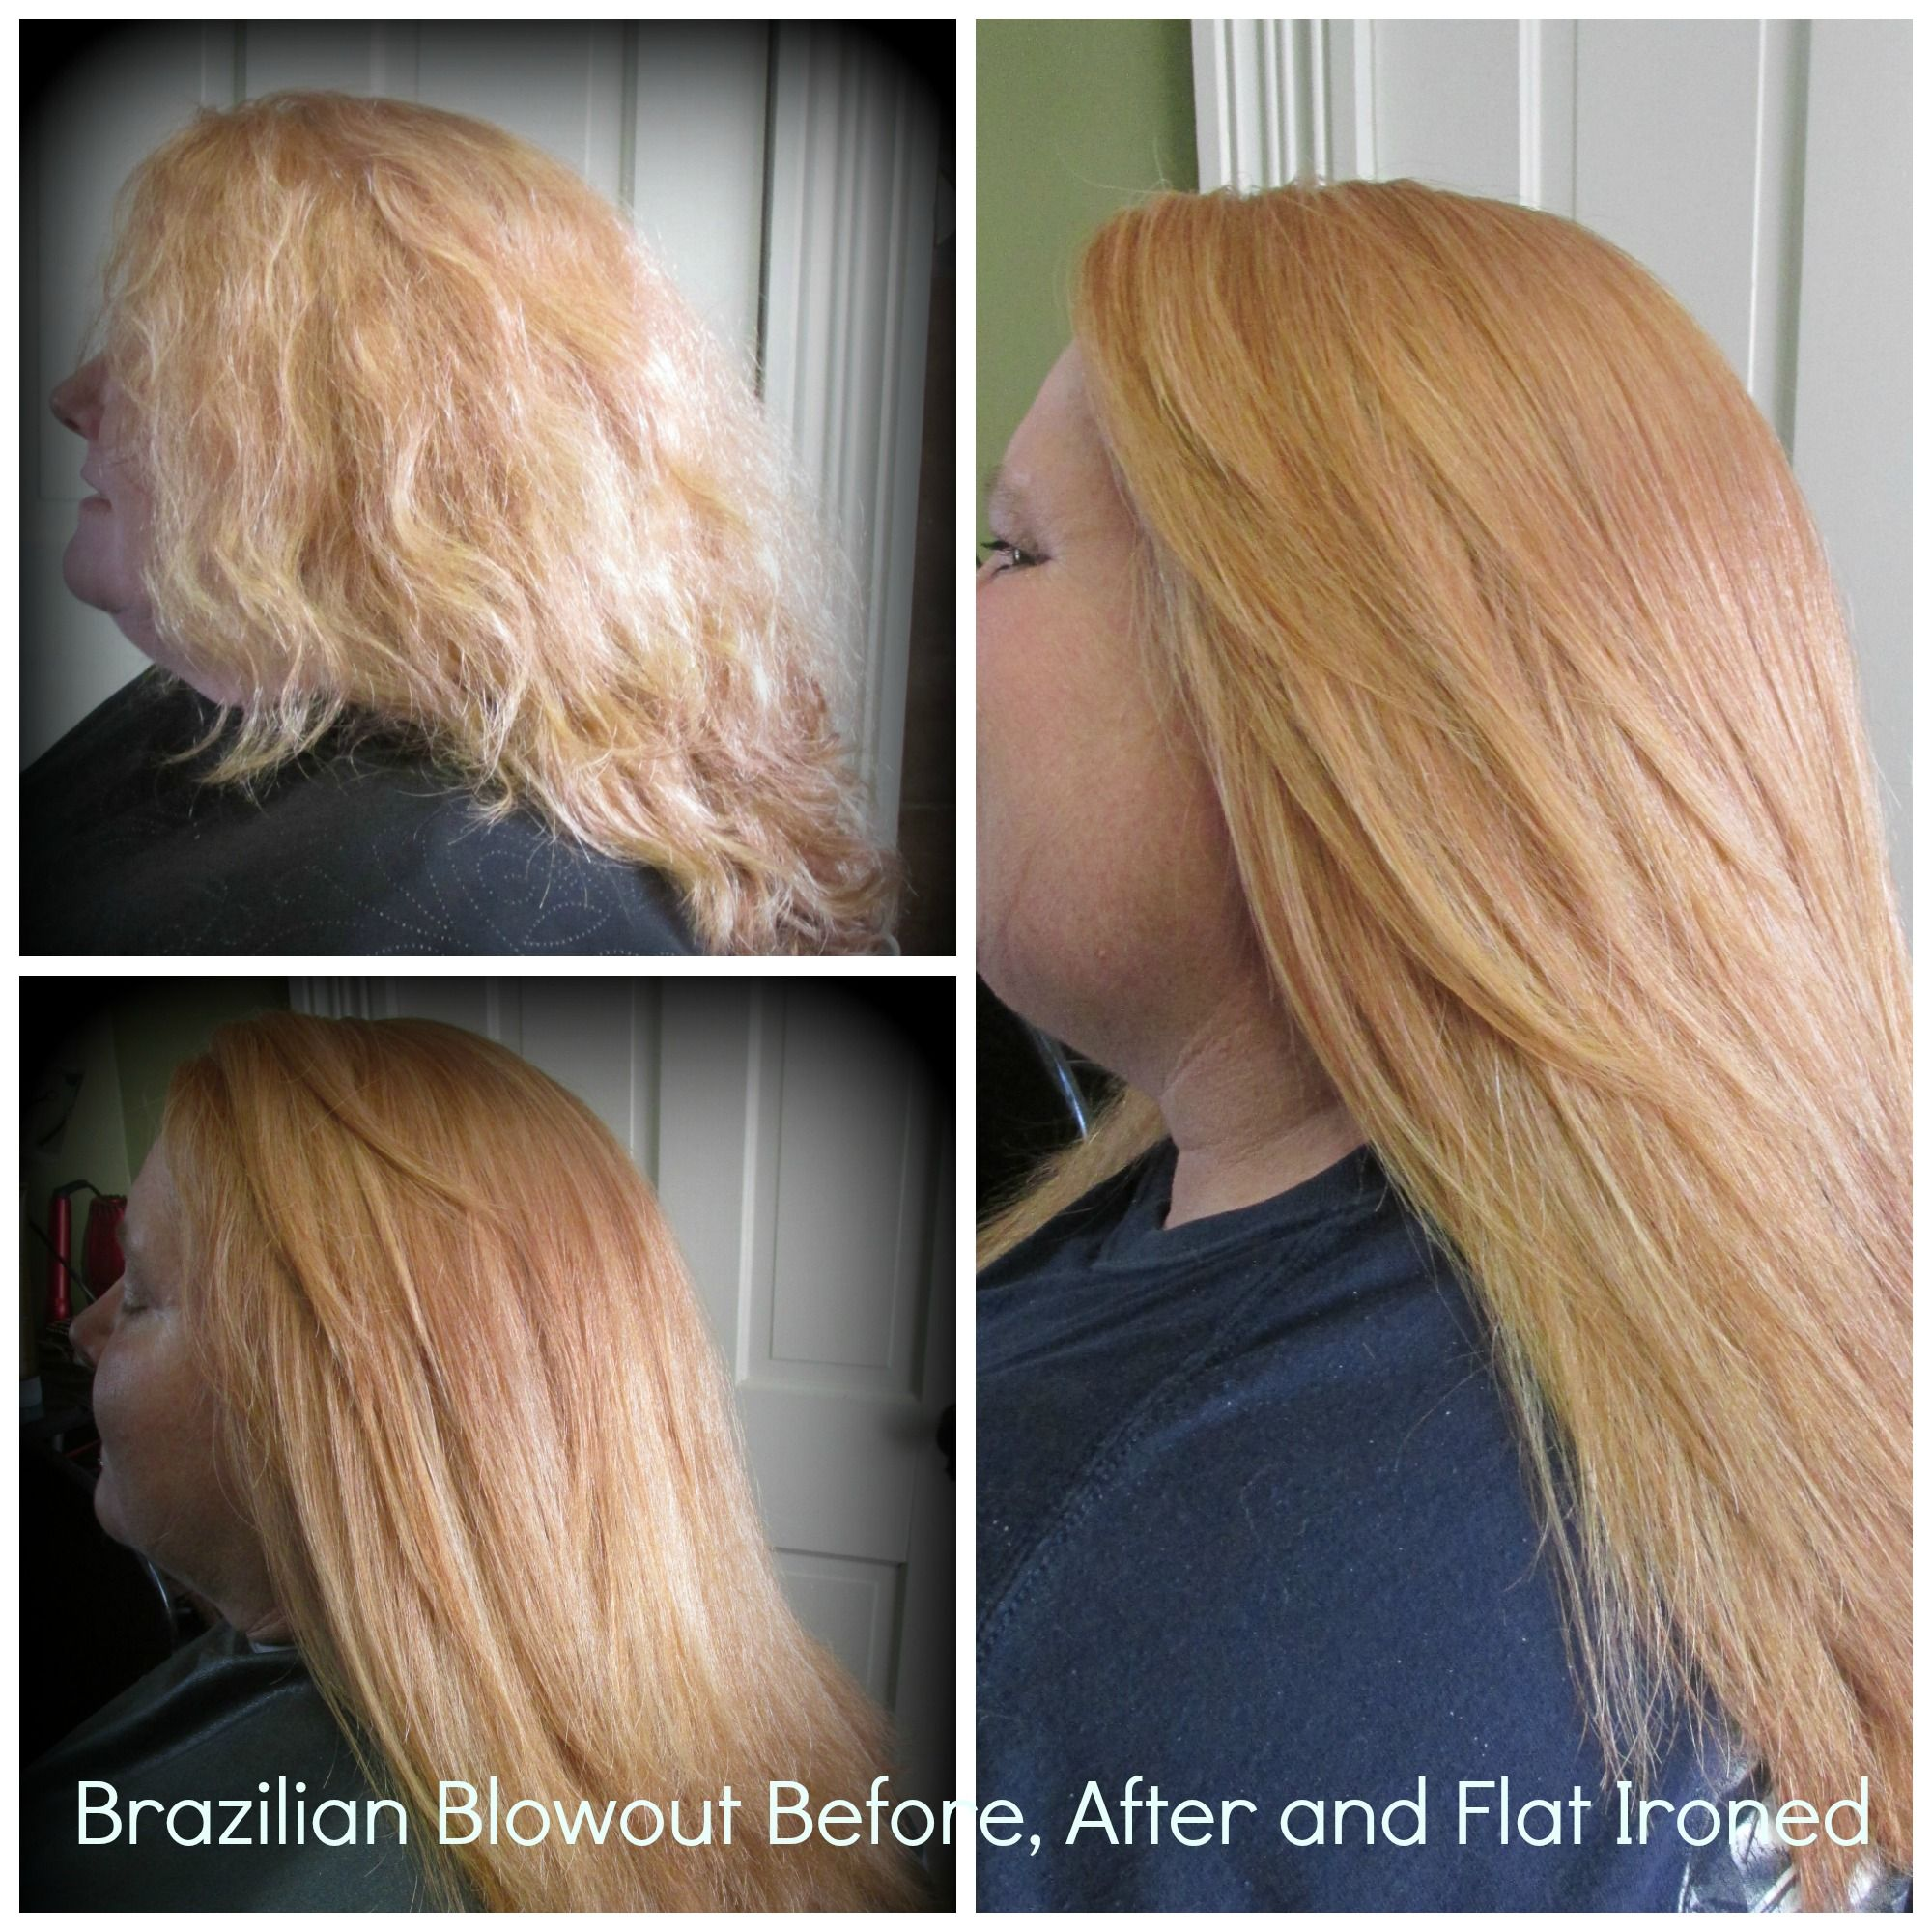 0ee50e30dbd6bcf9fe140419ebce8adc - How To Get A Blowout Look With A Straightener